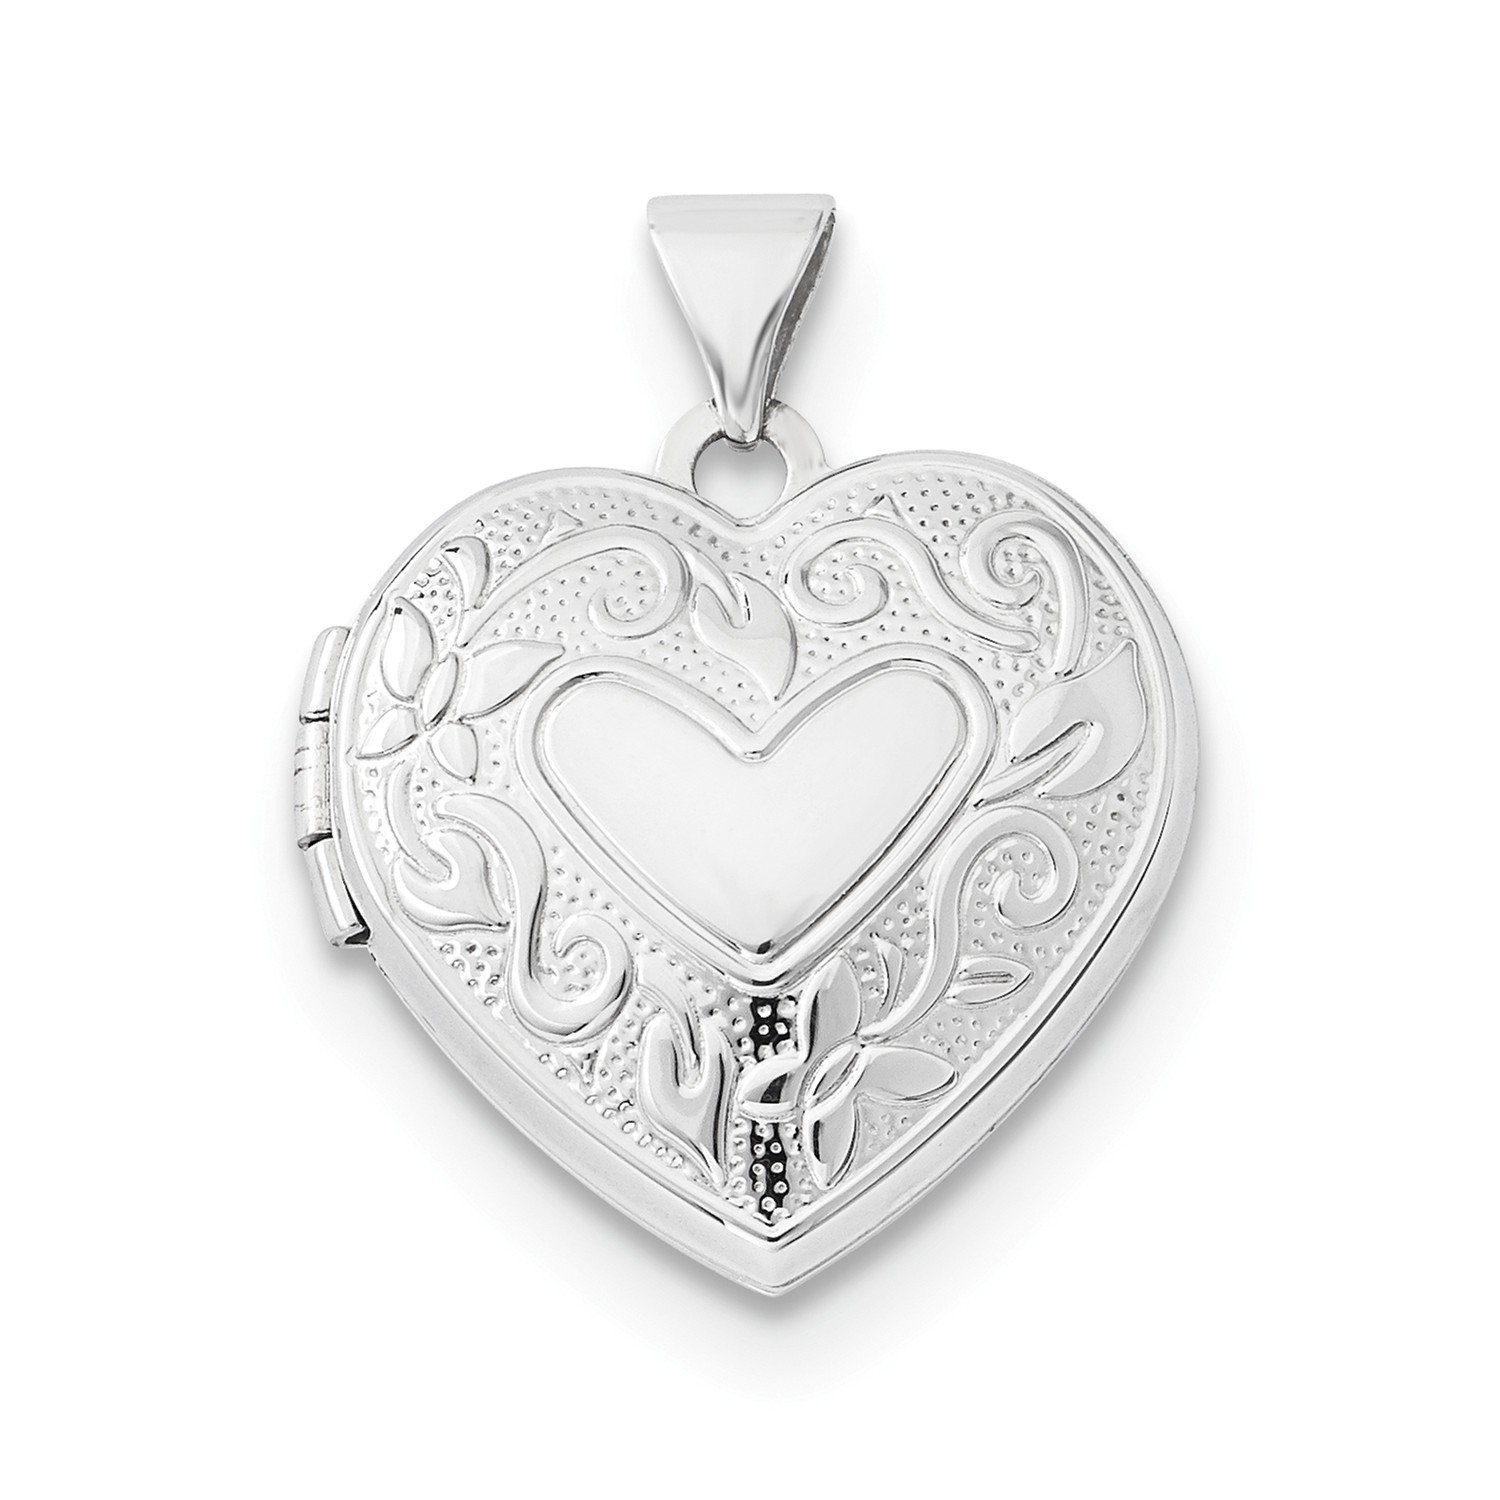 Roy Rose Jewelry 14K White Gold 18mm Heart Locket by Roy Rose Jewelry